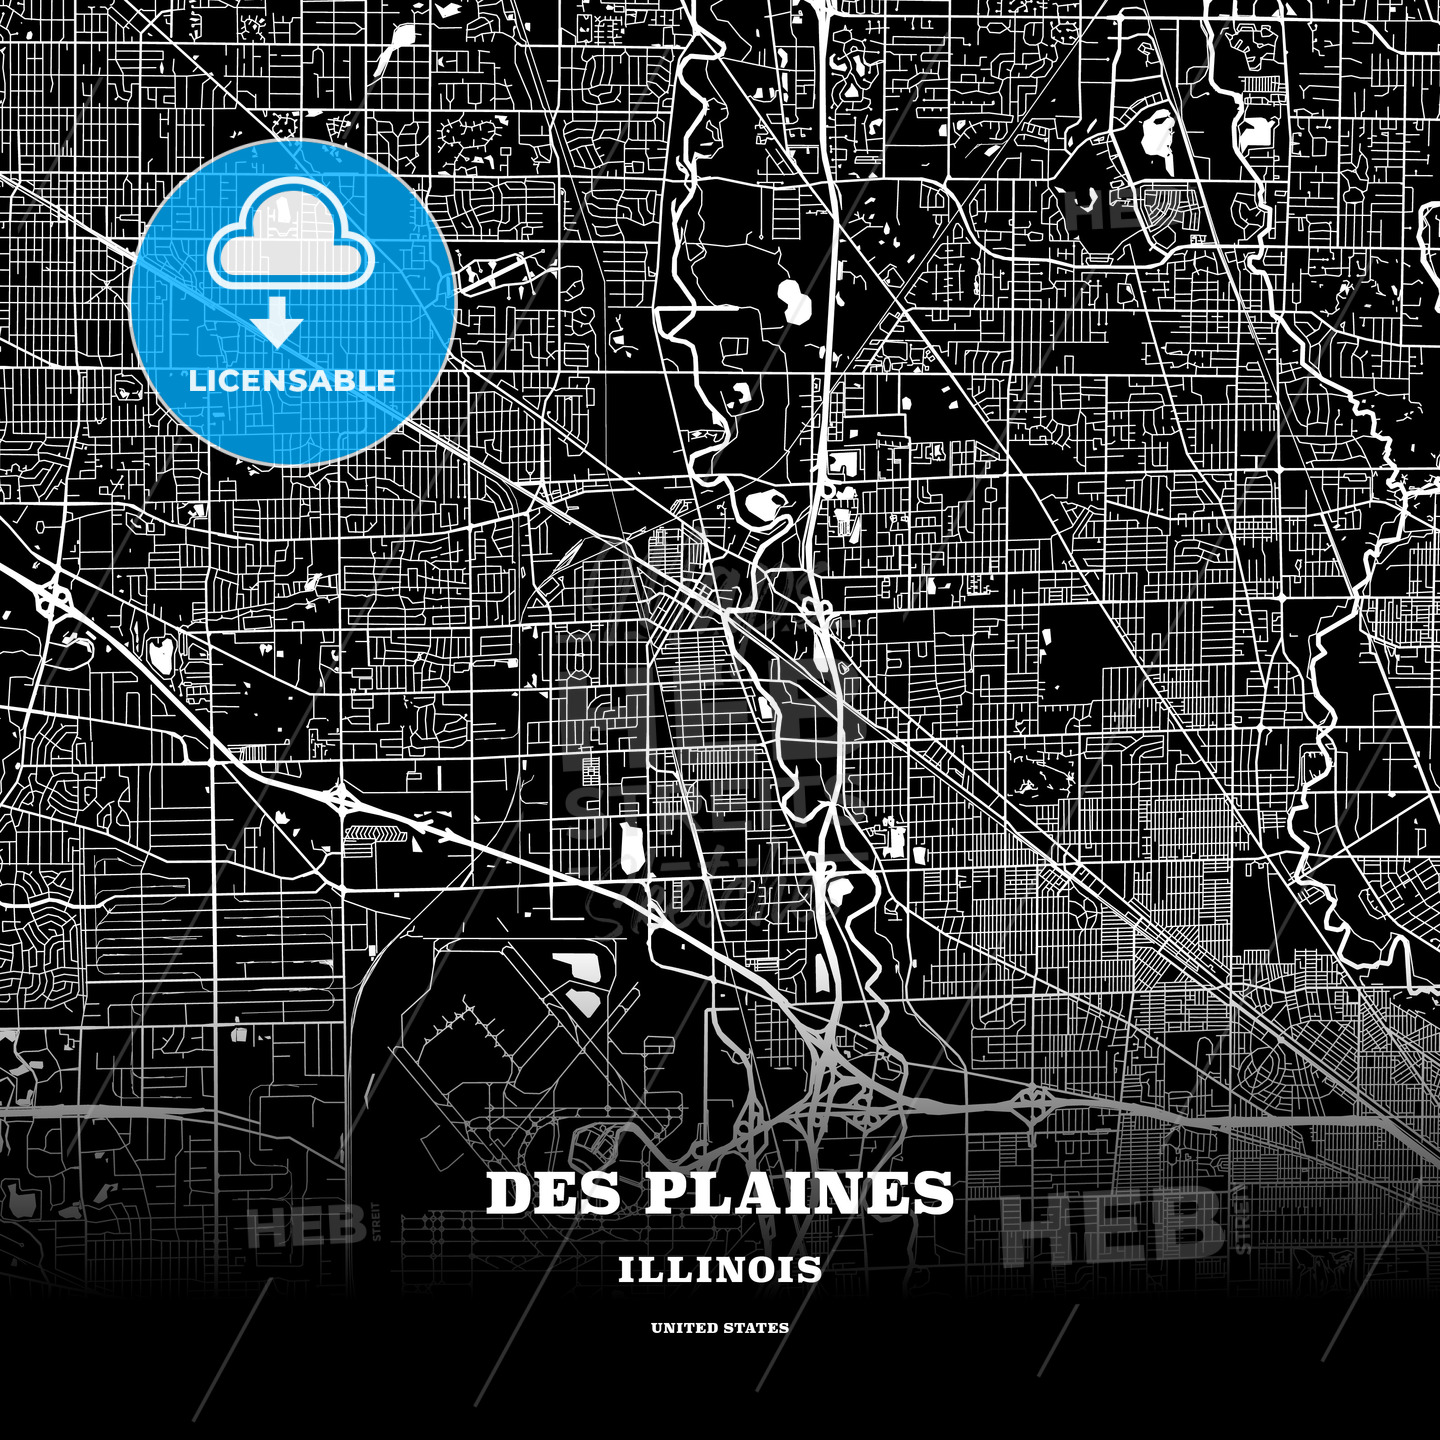 Black map poster template of Des Plaines, Illinois, USA